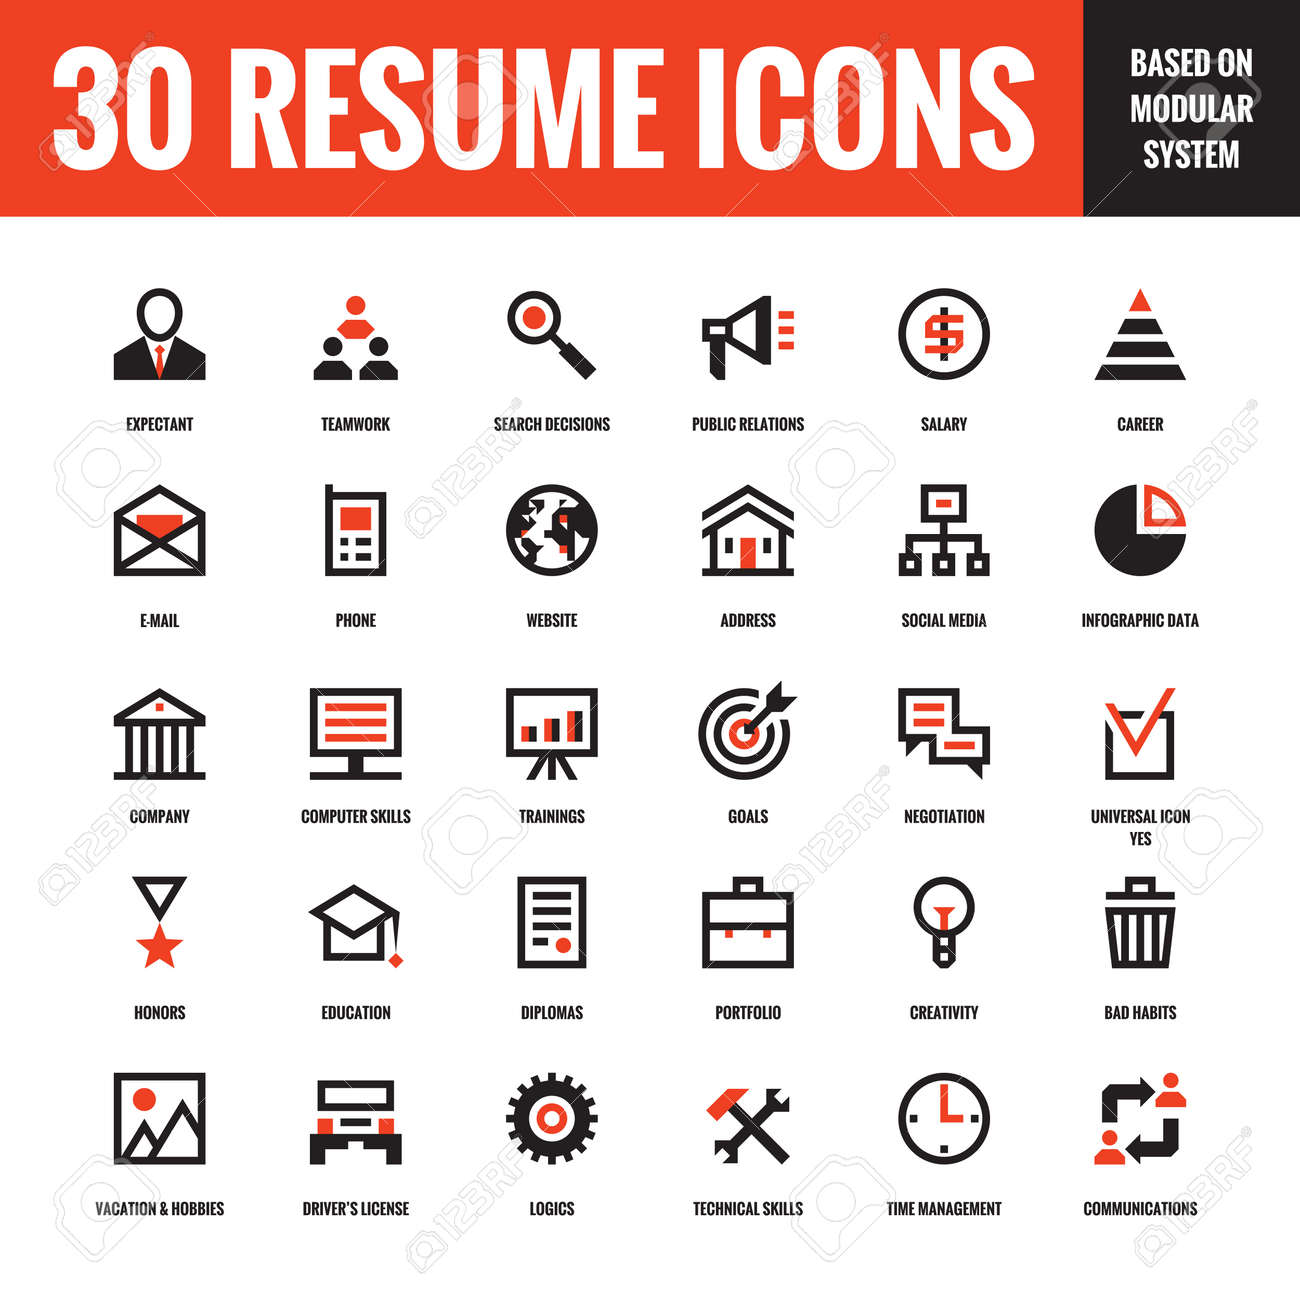 30 Resume Creative Vector Icons Based On Modular System Set